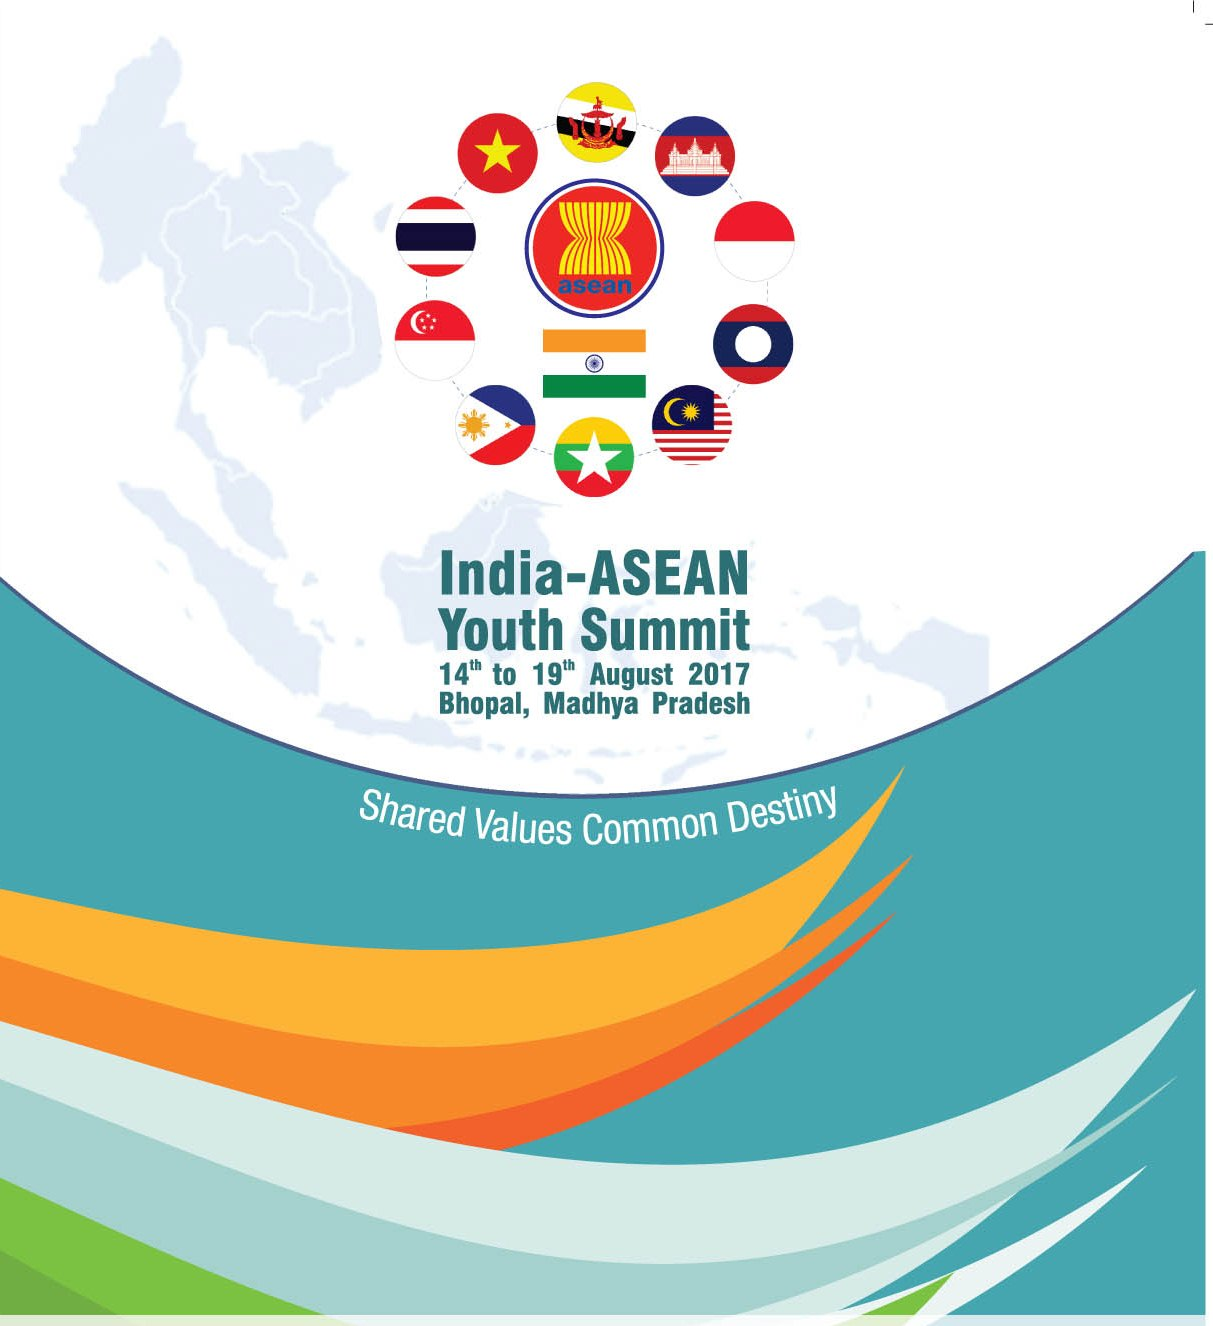 India – ASEAN Youth Summit 2017